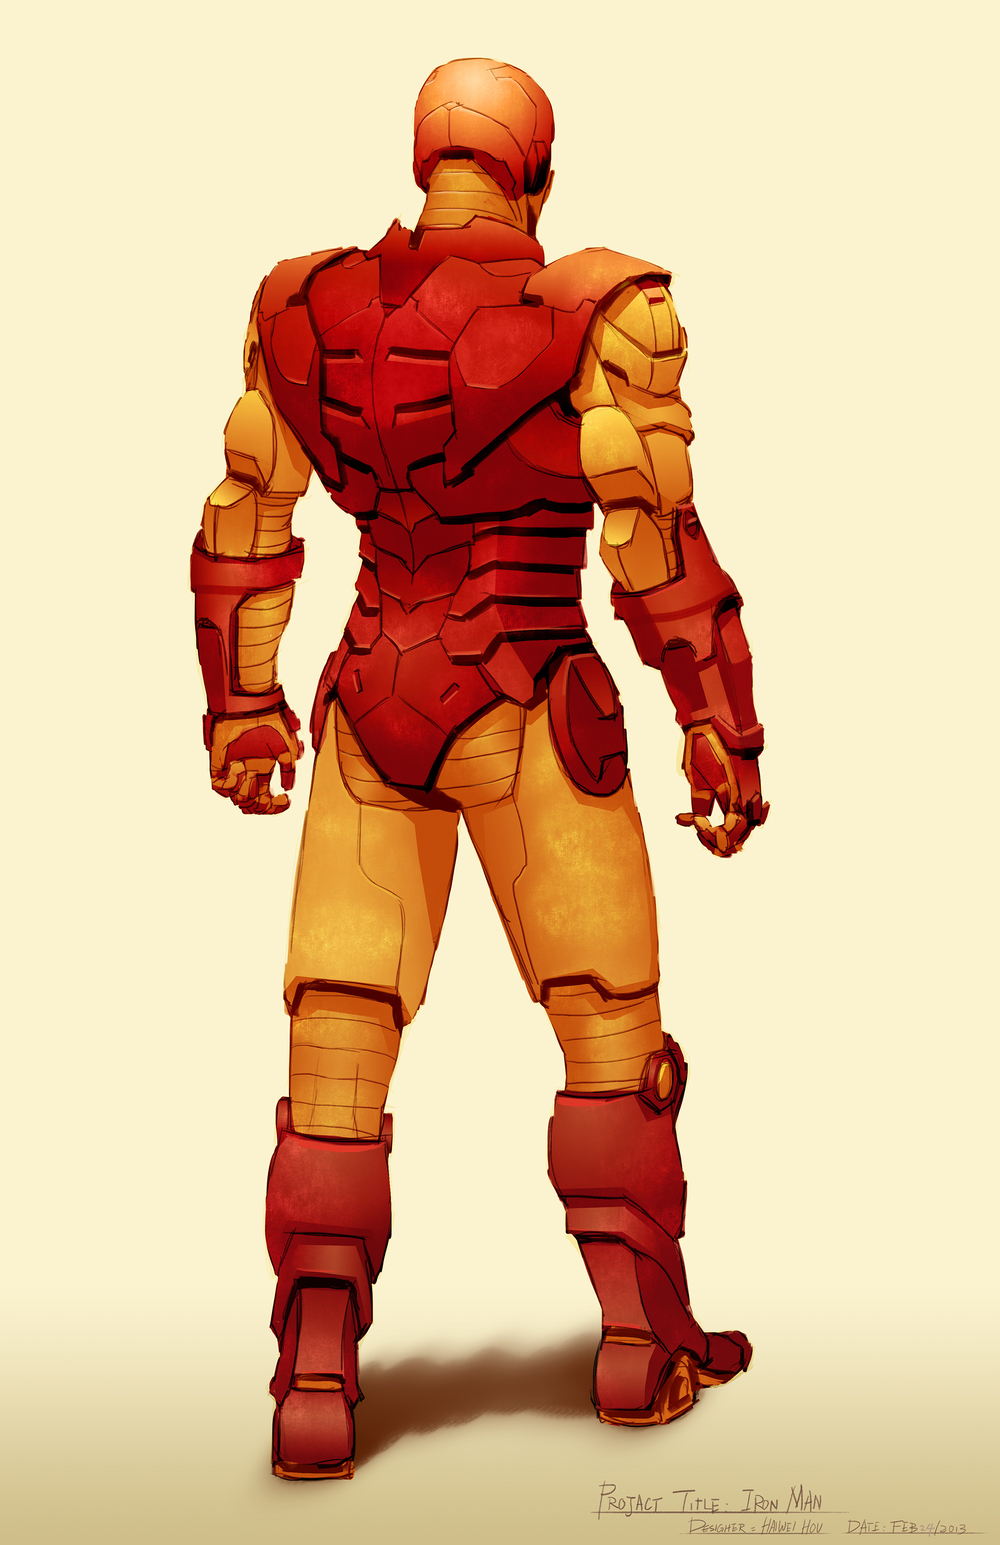 Iron Man Design - Back